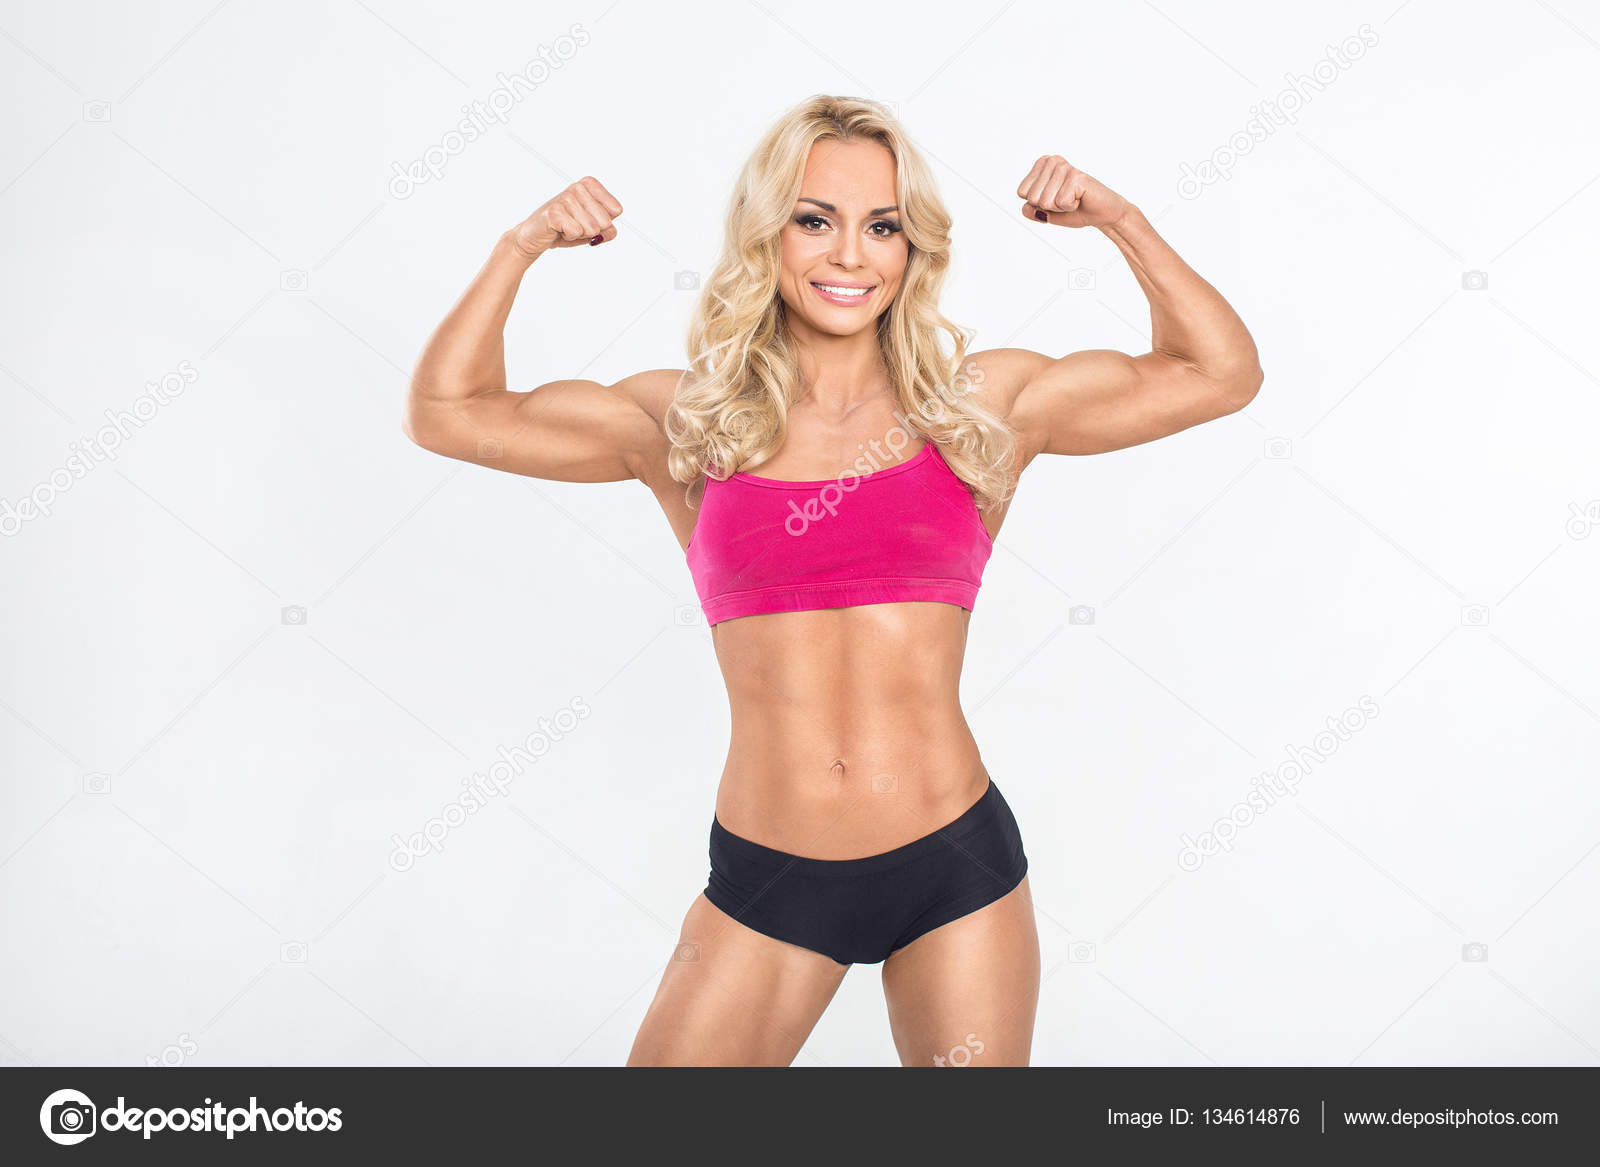 6a7a60344 Young beautiful woman posing in a gym outfit. — Stock Photo © photo ...